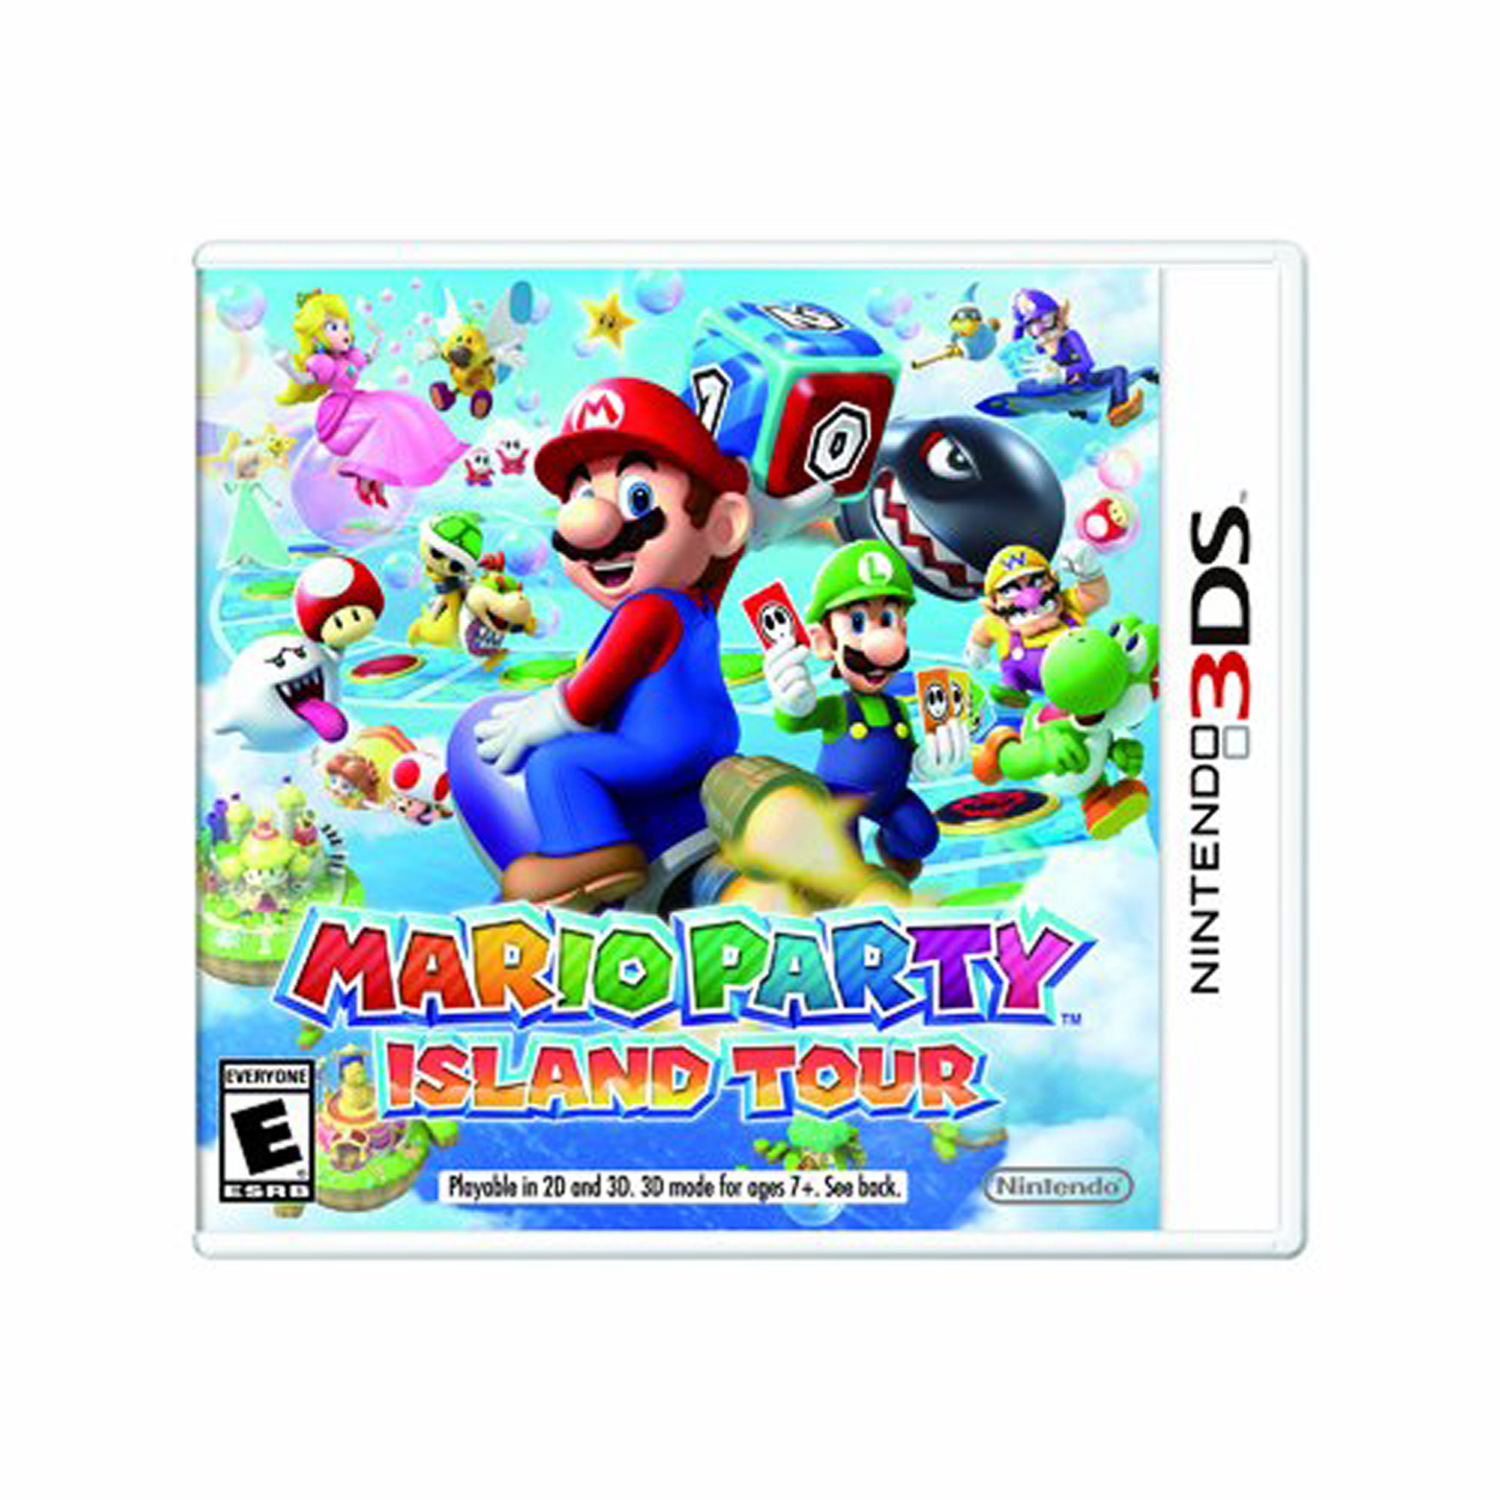 Mario Party: Island Tour, Nintendo, Nintendo 3DS, [Digital Download], 0004549668027